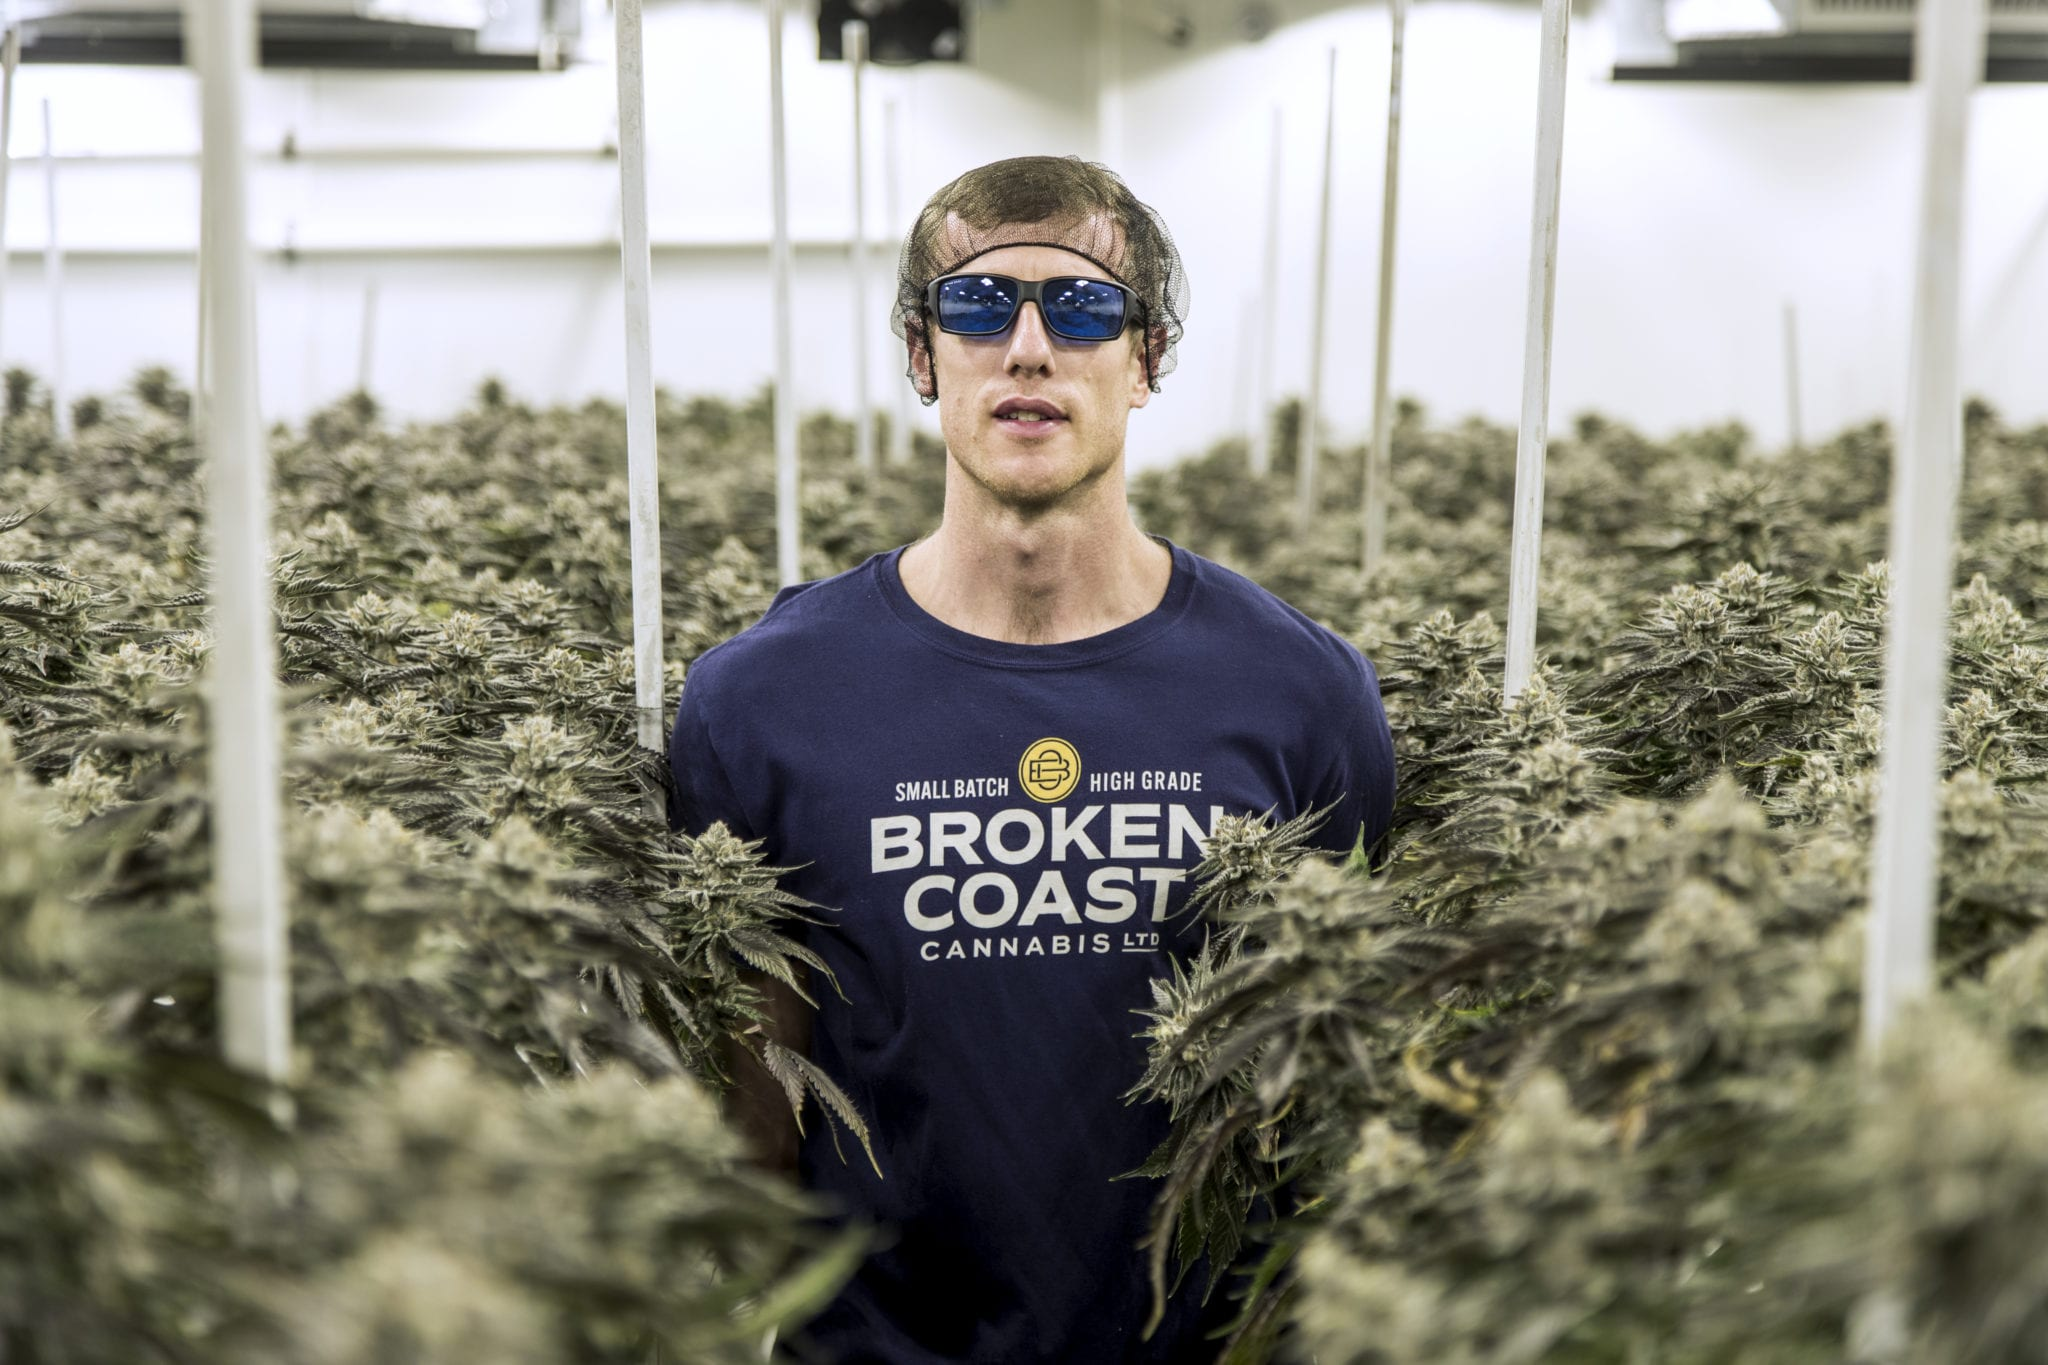 'No way to compromise on quality' a conversation with Broken Coast's Kevin Anderson